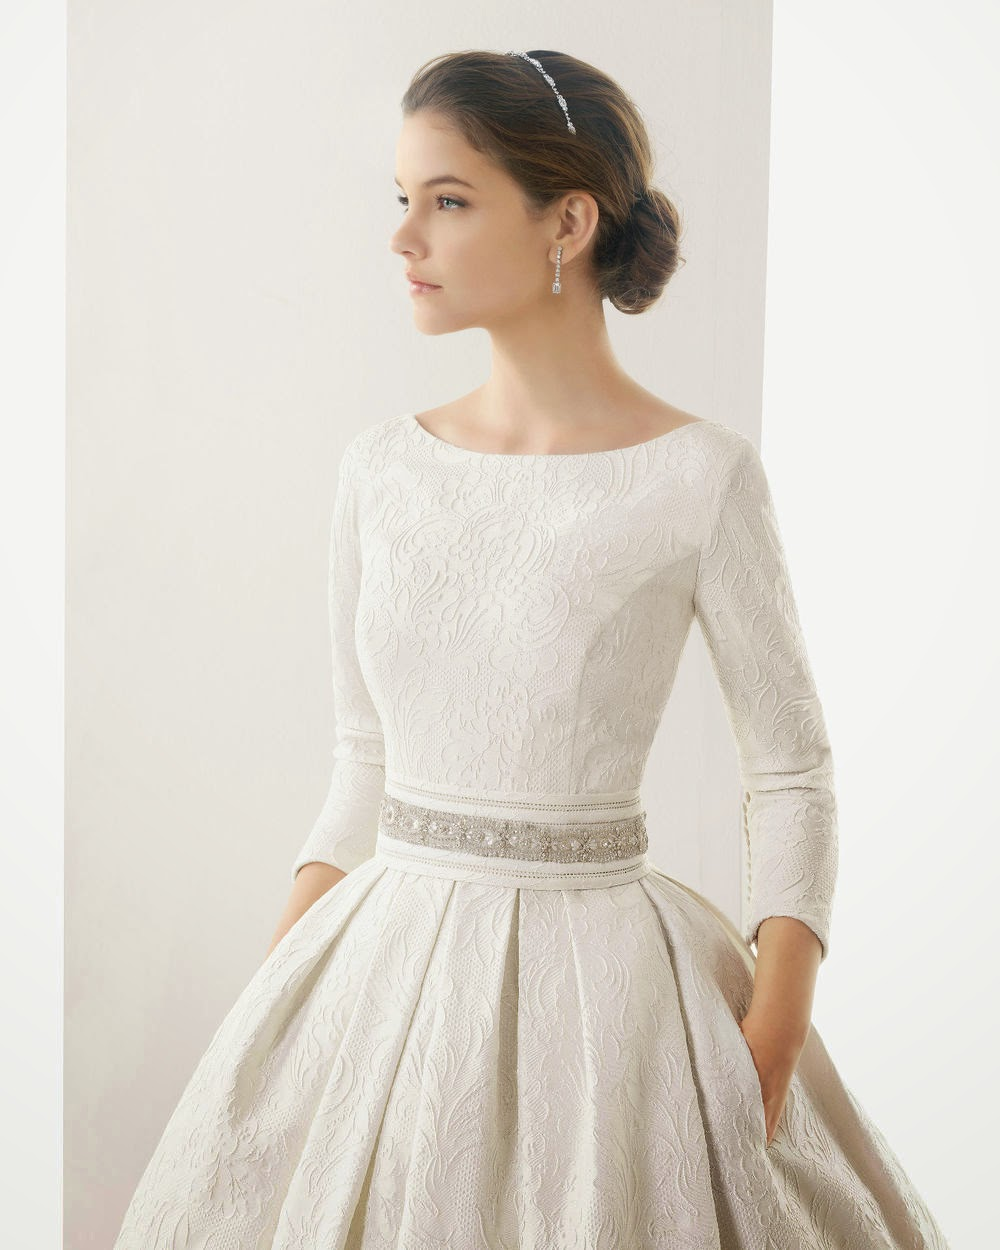 Brides bridesmaids fashion those style wedding dresses for Long sleeve dresses to wear to a wedding